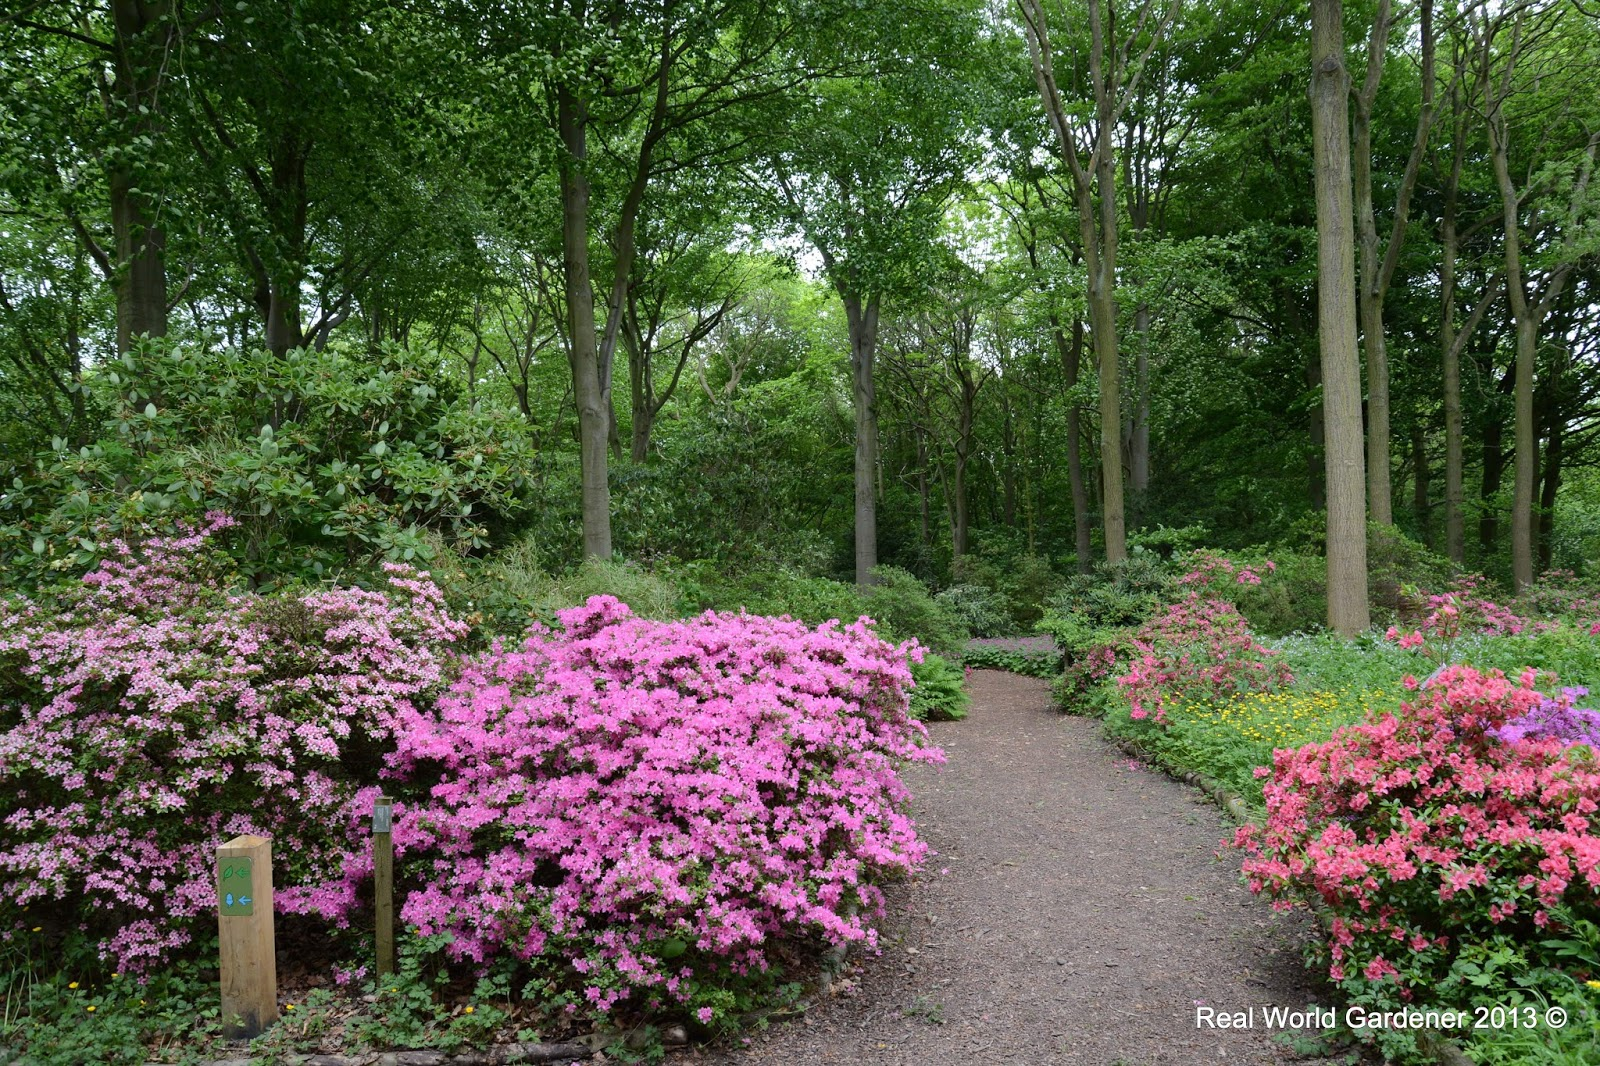 Real world gardener taming trees and shrubs in design elements for Garden design podcast